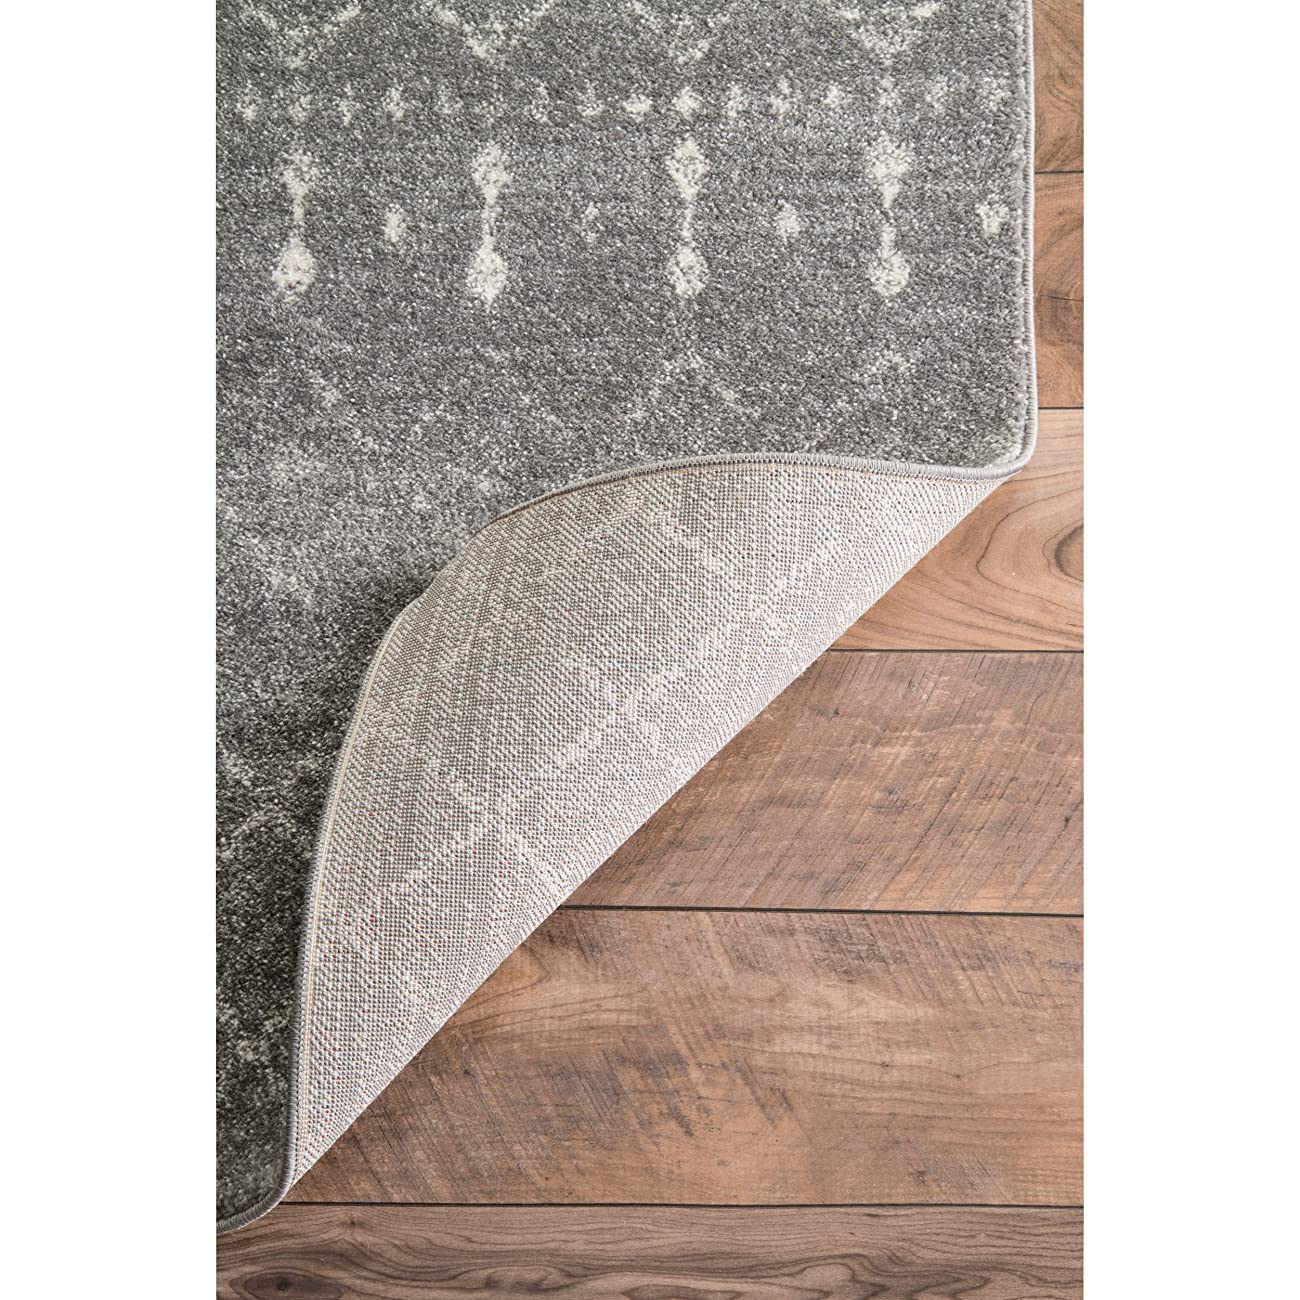 Traditional Vintage Moroccan trellis Dark Grey Area Rugs, 5 Feet by 7 Feet 5 Inches (5' x 7' 5